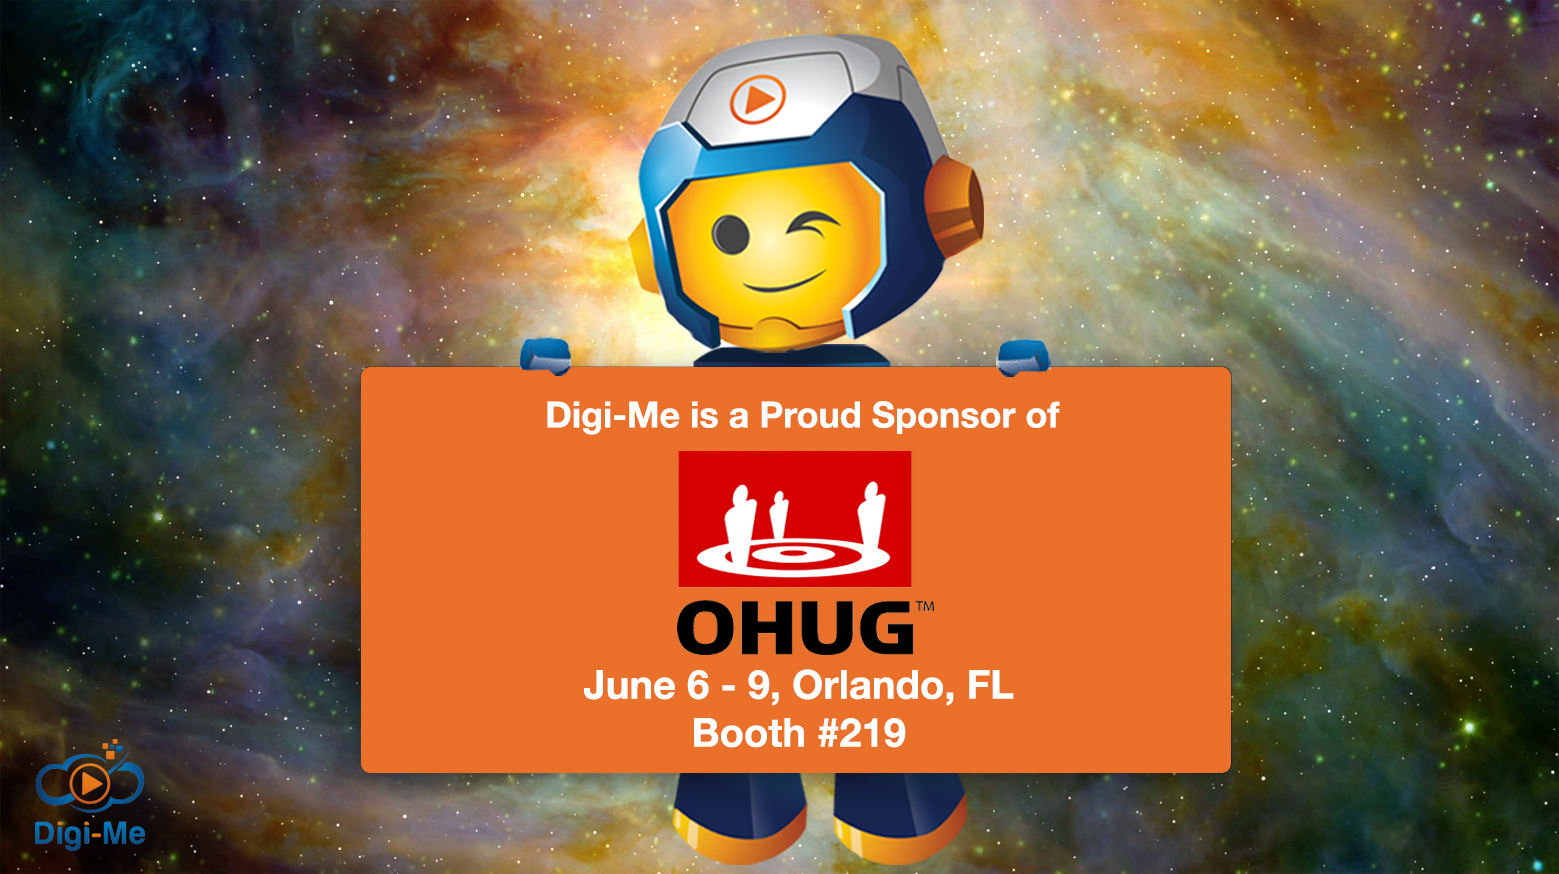 Digi-Me is a Proud Sponsor of the OHUG 2017 Global Conference